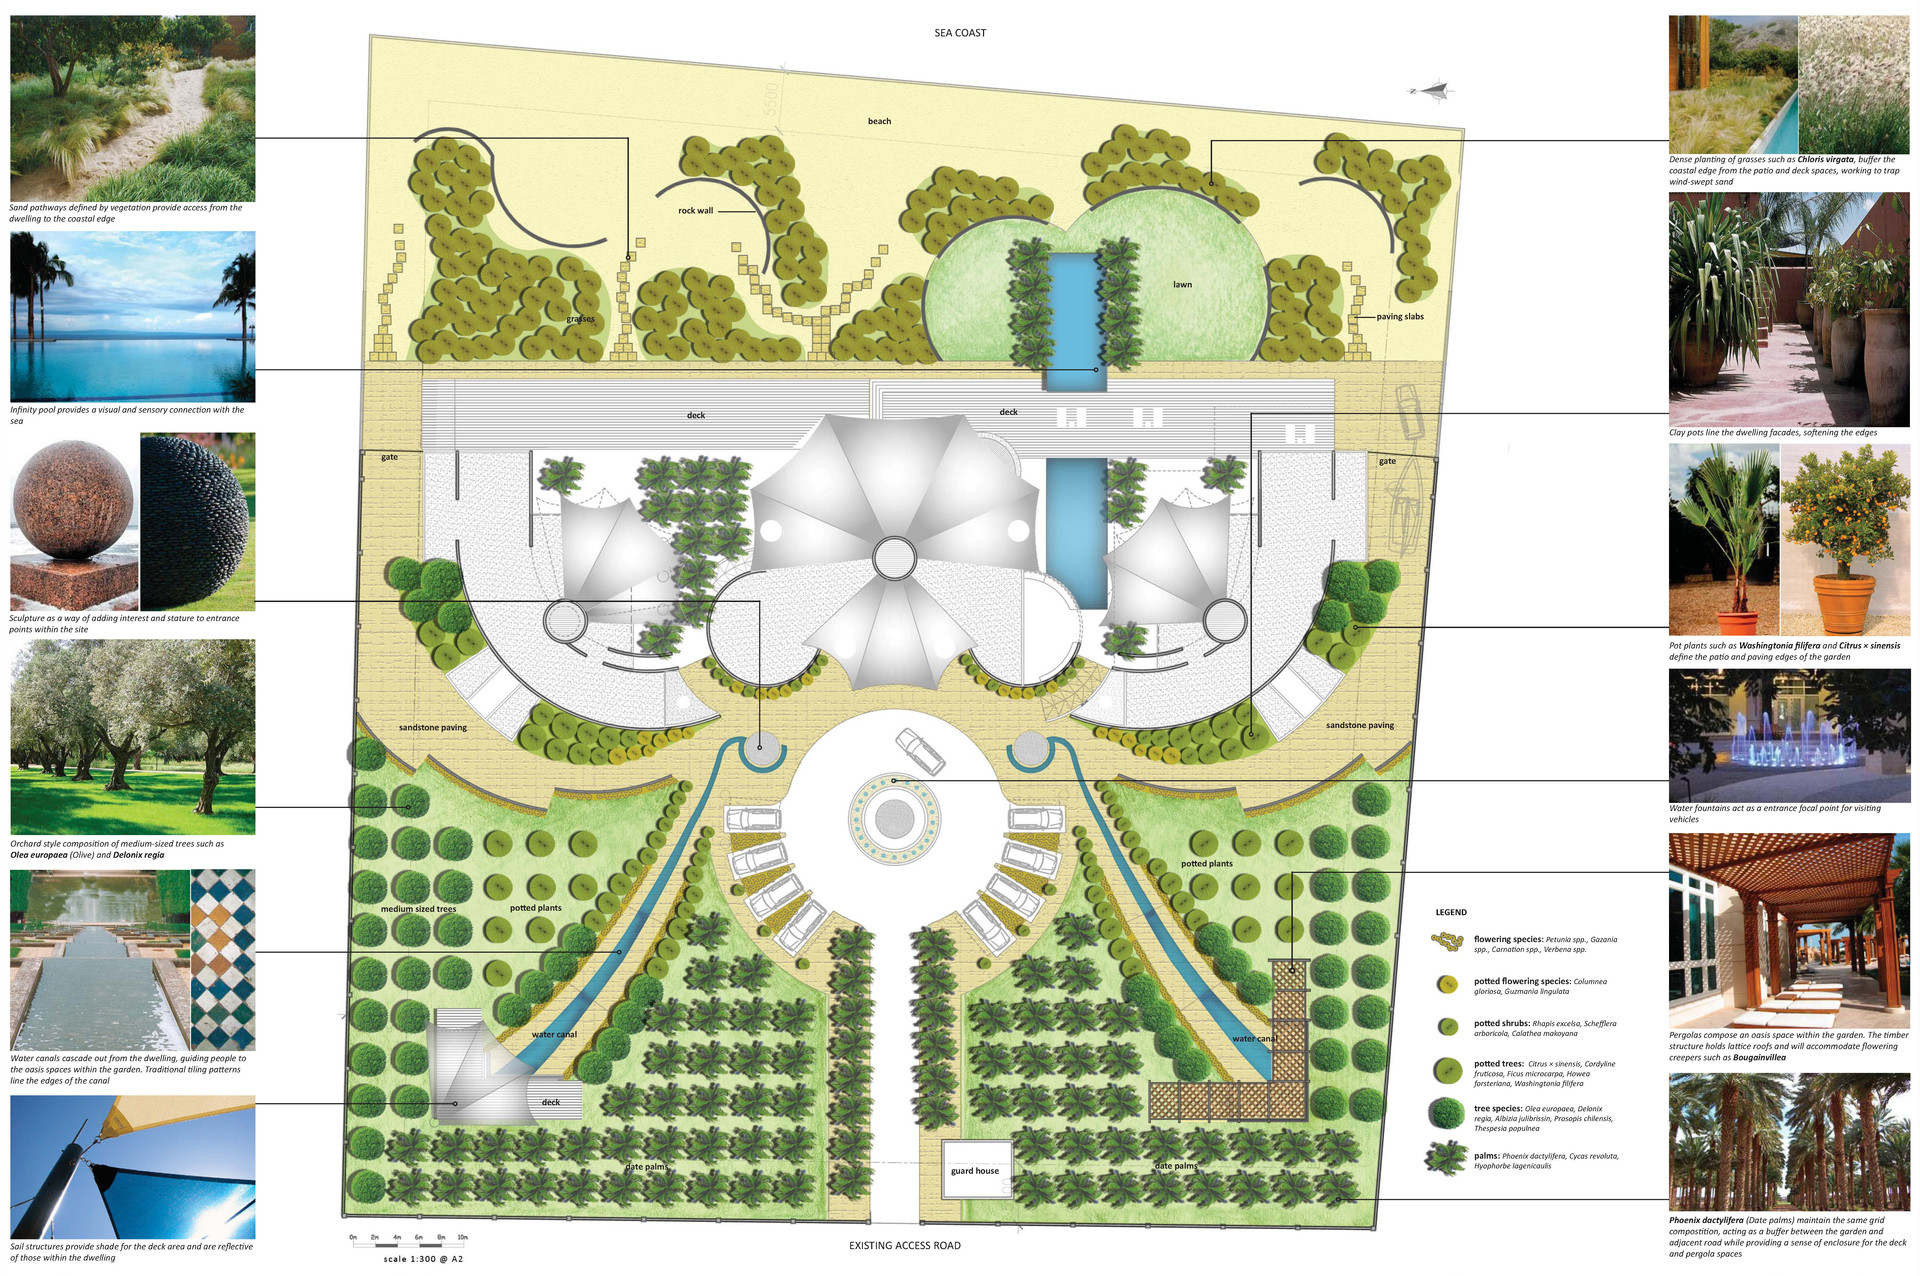 BEACH PALACE GARDENS_Concept Plan_no.2.jpg